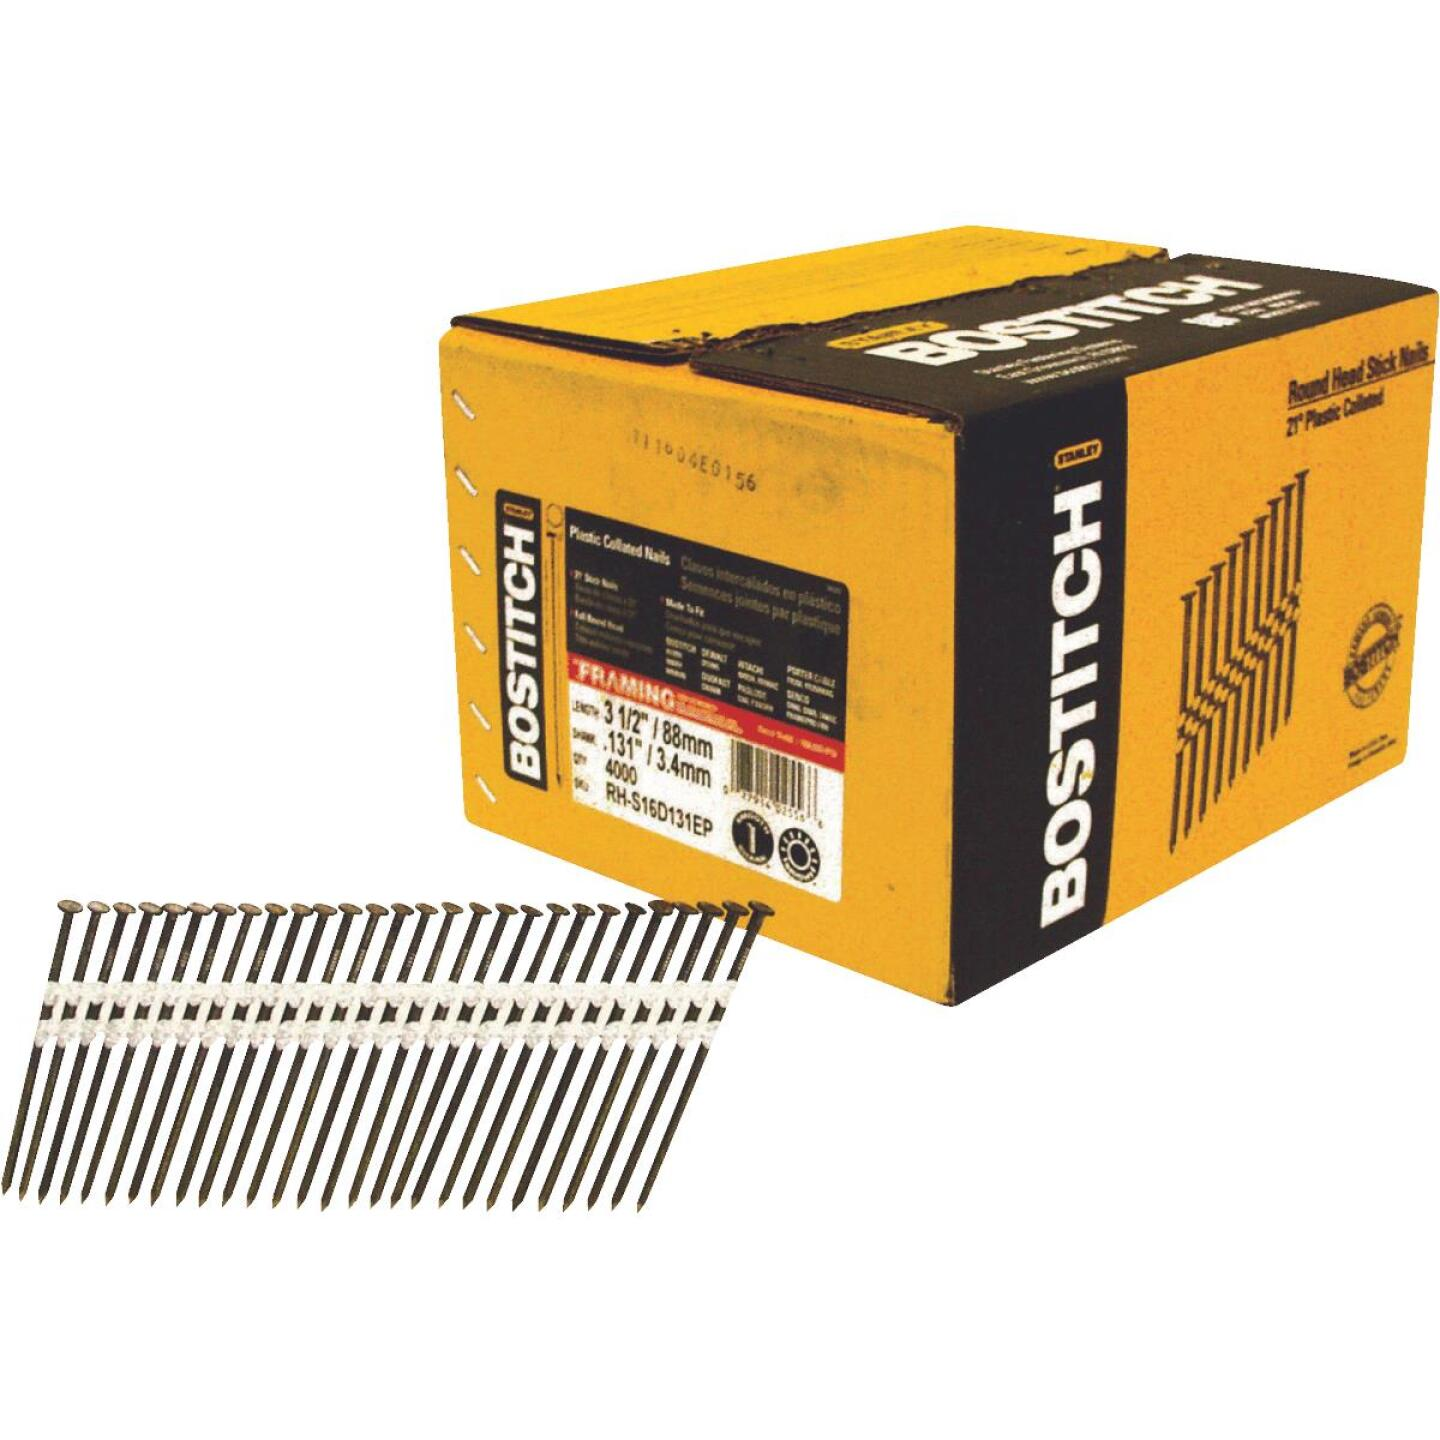 Bostitch 21 Degree Plastic Strip Coated Full Round Head Framing Stick Nails, 3-1/2 In. x .131 In. (4000 Ct.) Image 1